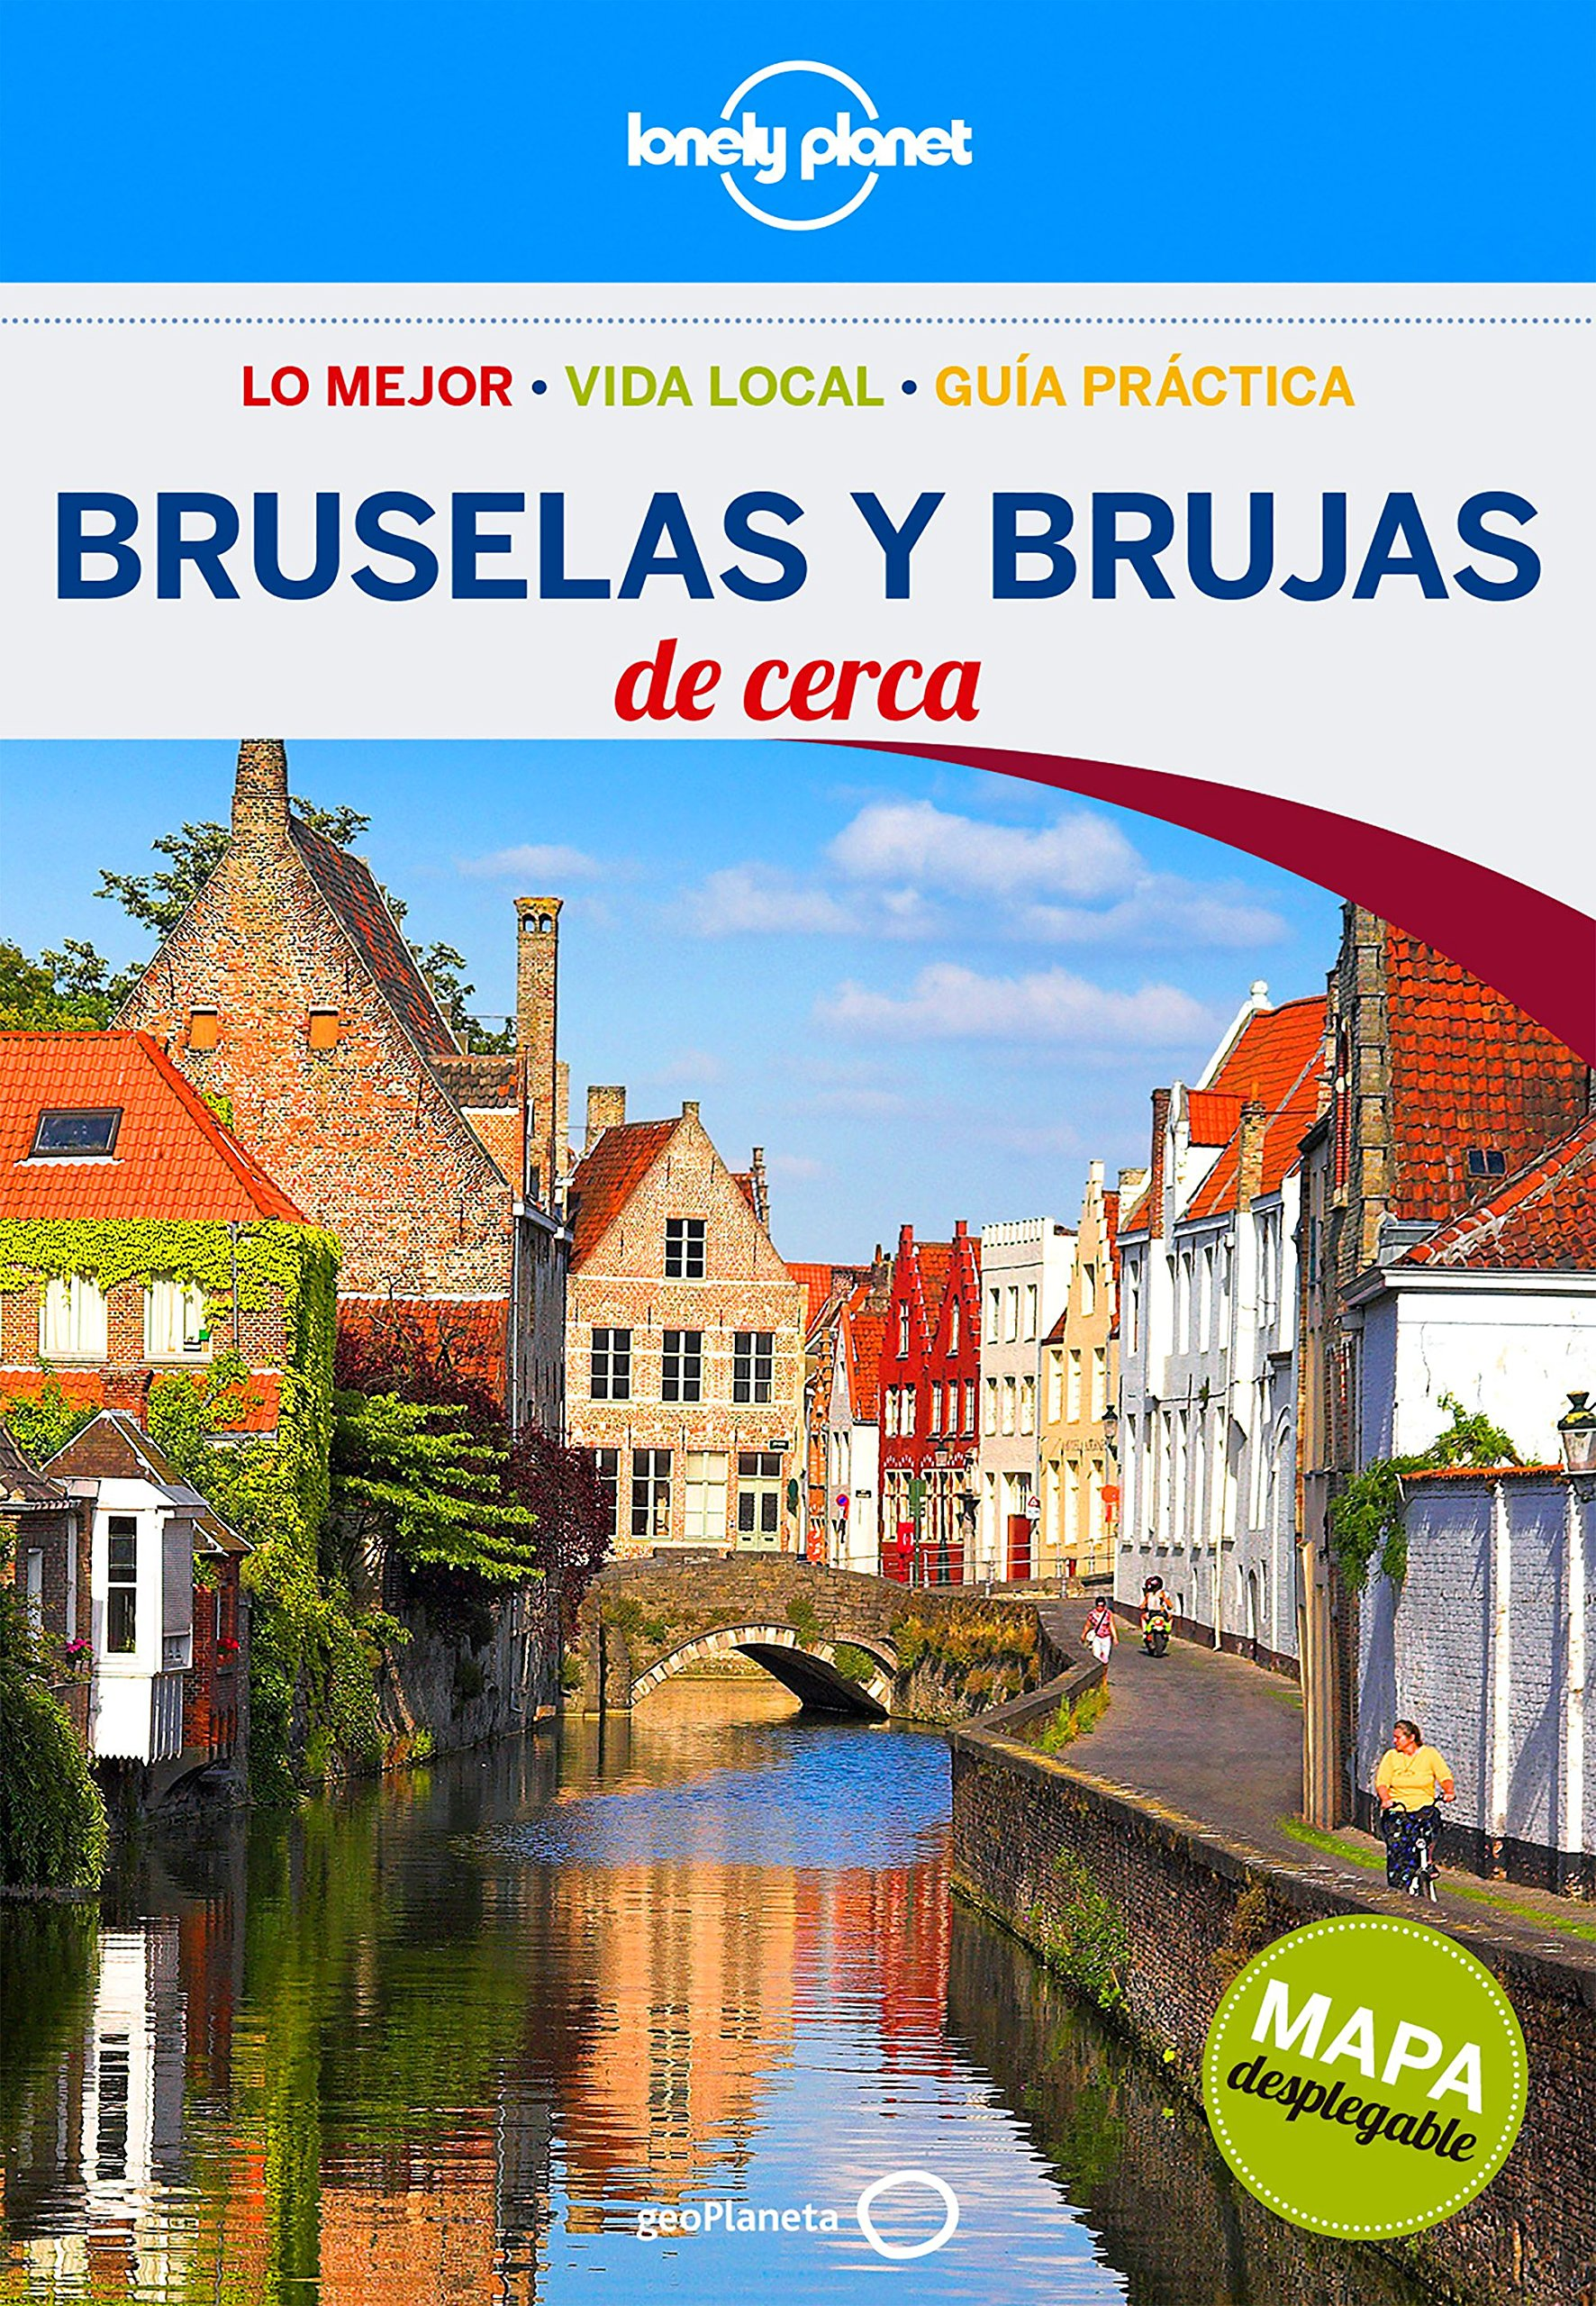 Lonely Planet Brujas Y Bruselas De Cerca (Travel Guide) (Spanish Edition)